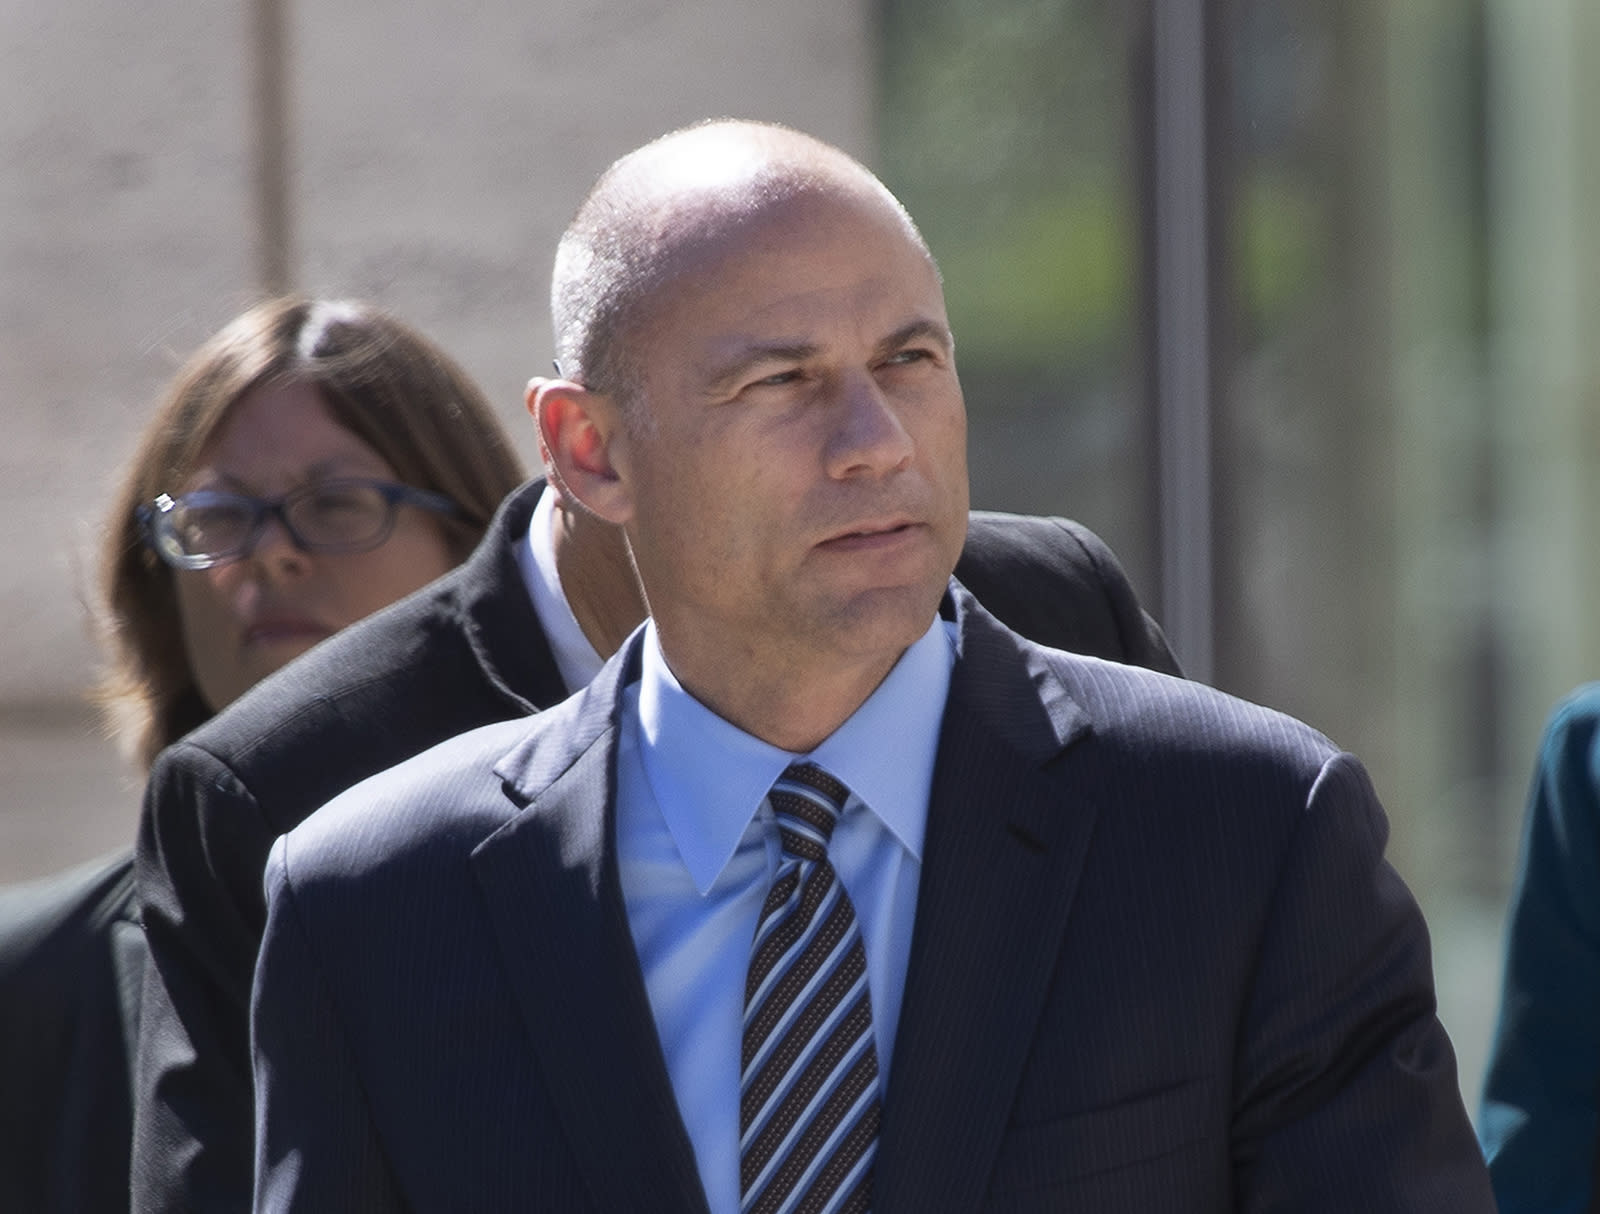 Michael Avenatti is broke and likely will need public defender, court documents say